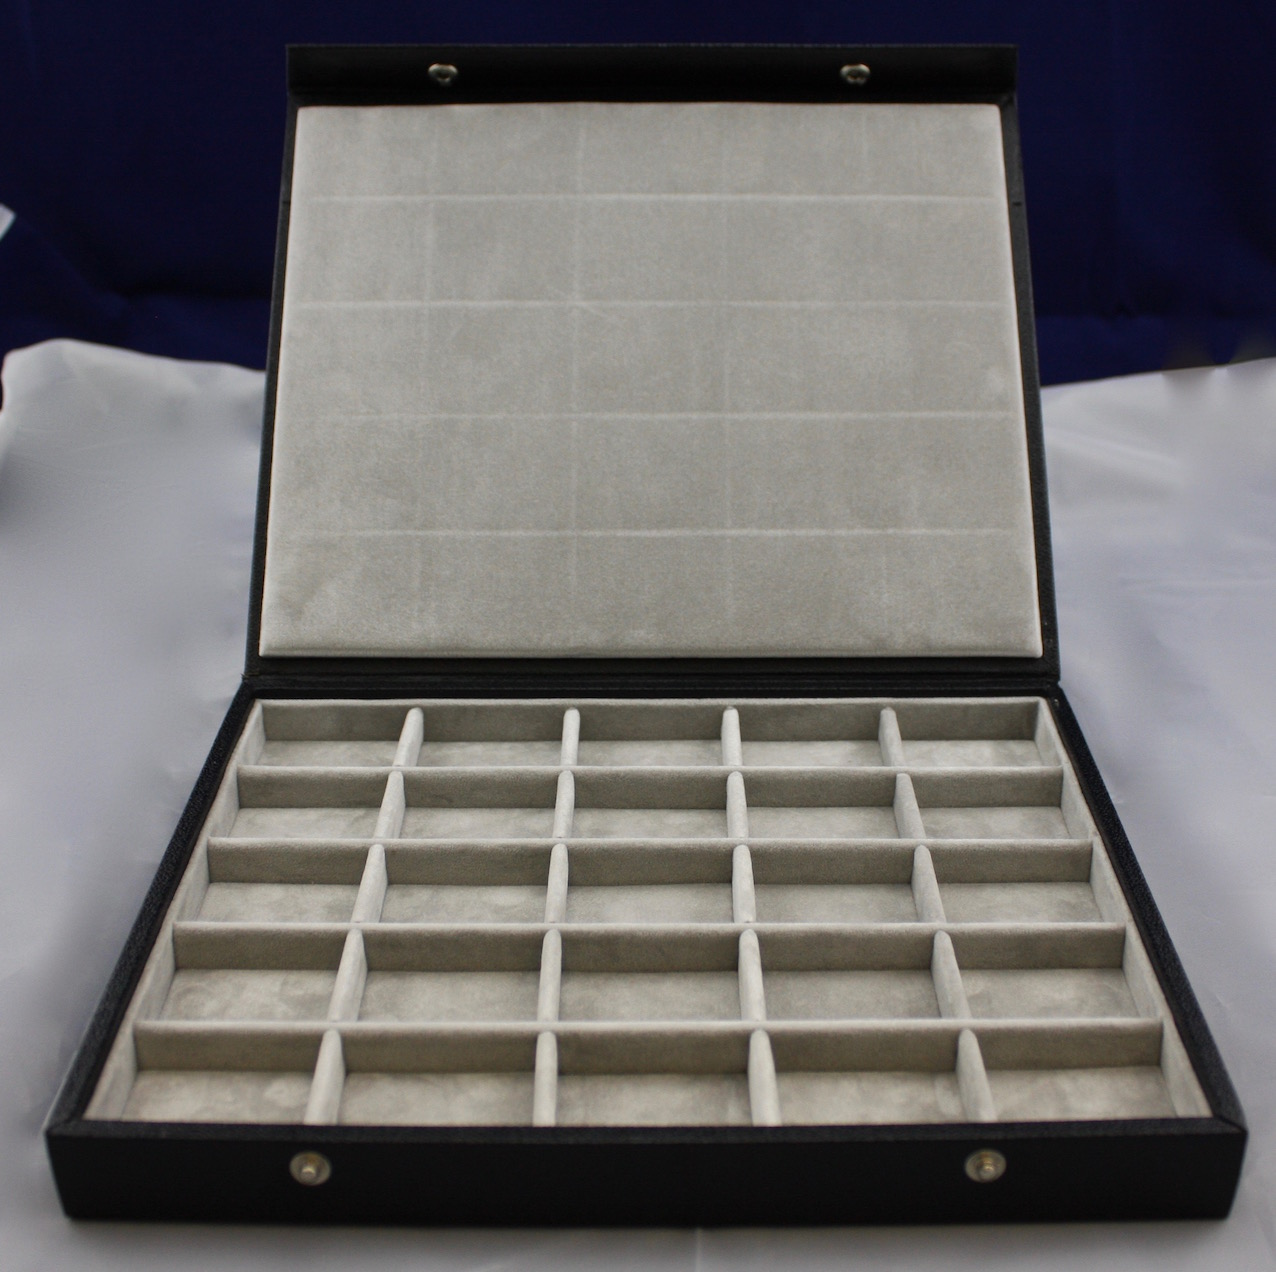 Universal 5 x 5 tray with lid